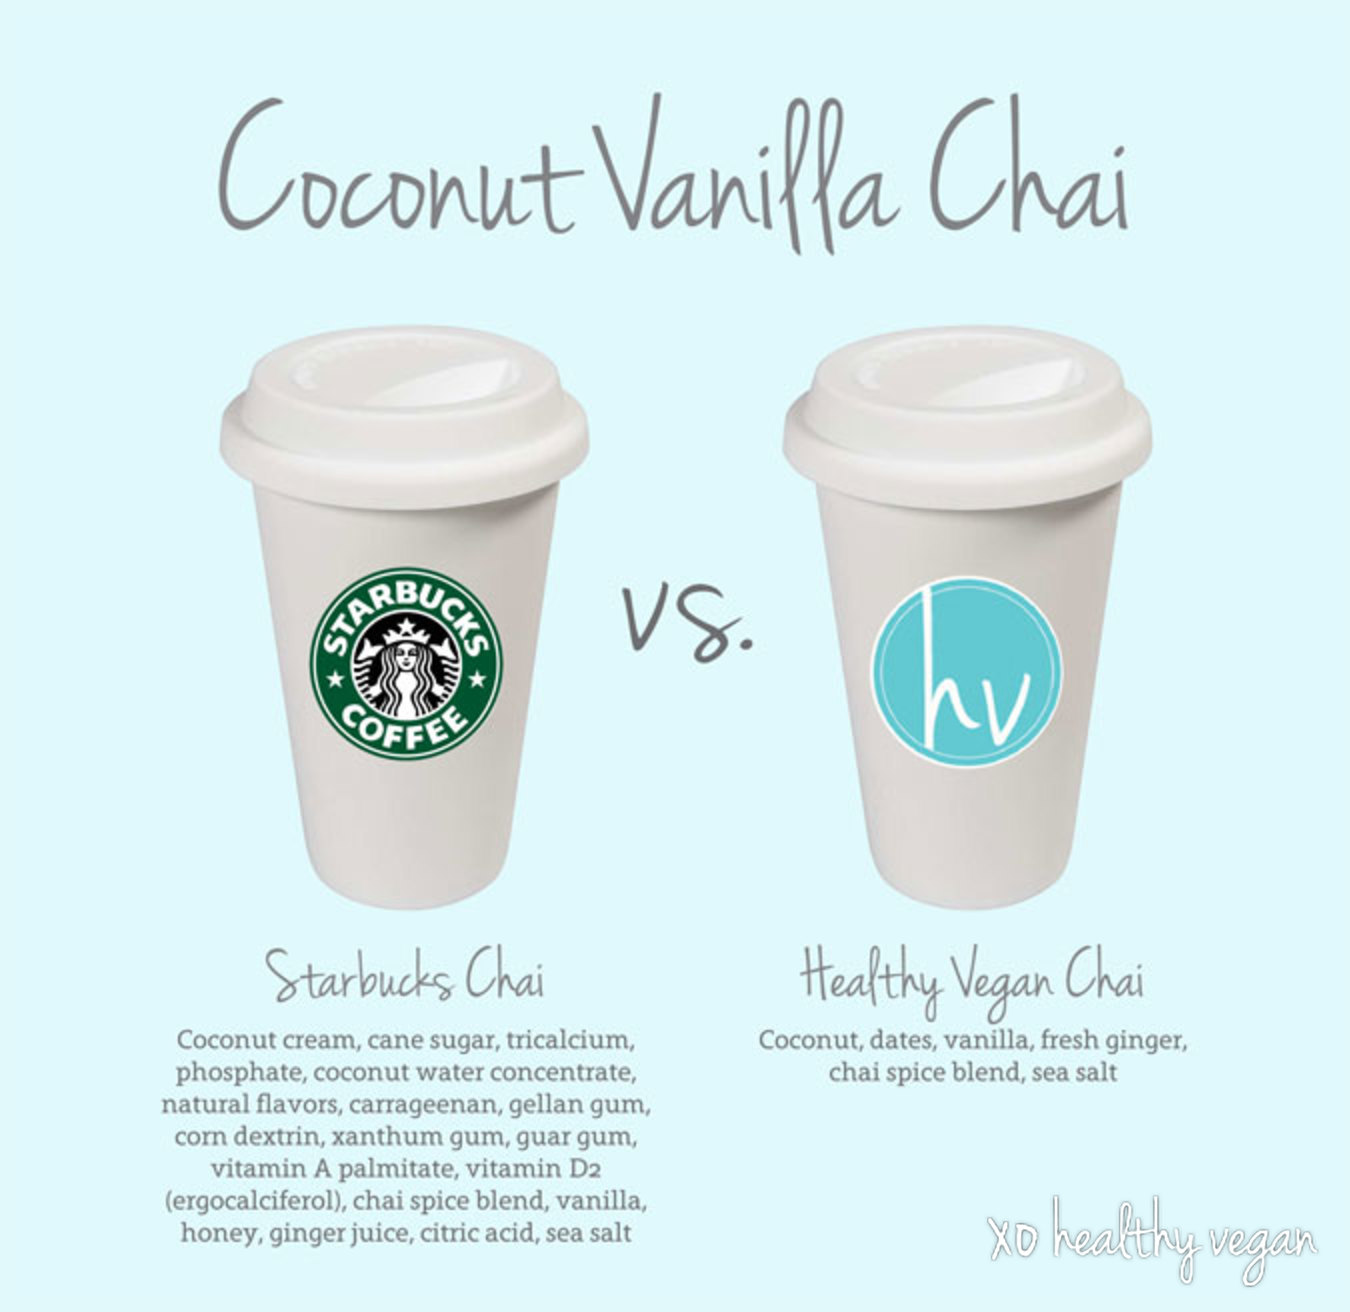 ColleenHolland.CoconutVanillaChai.Graphic